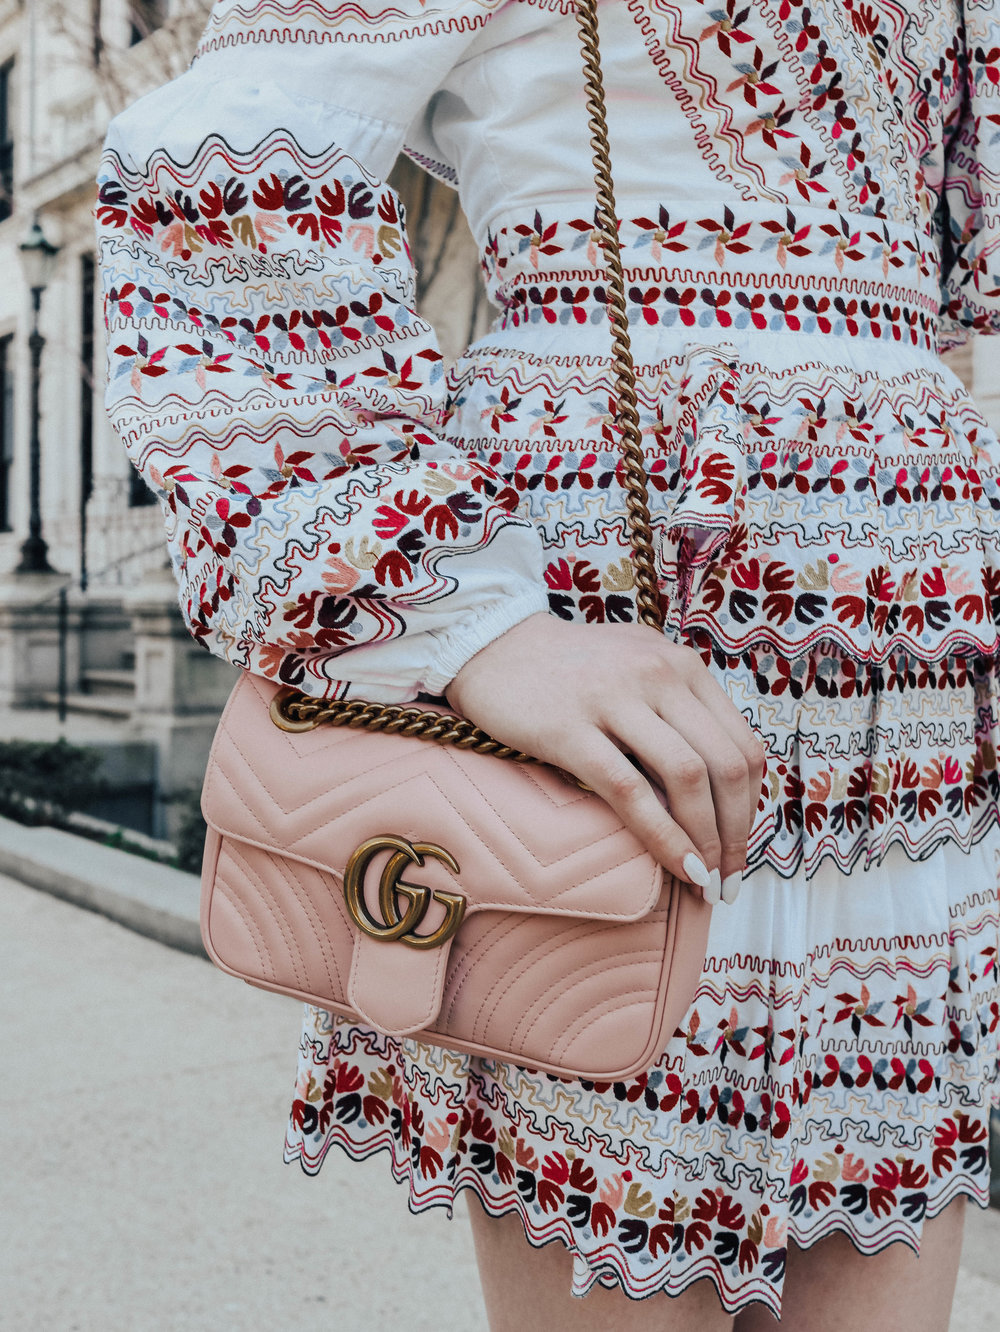 Embroidered Spring Dress | @maevestier